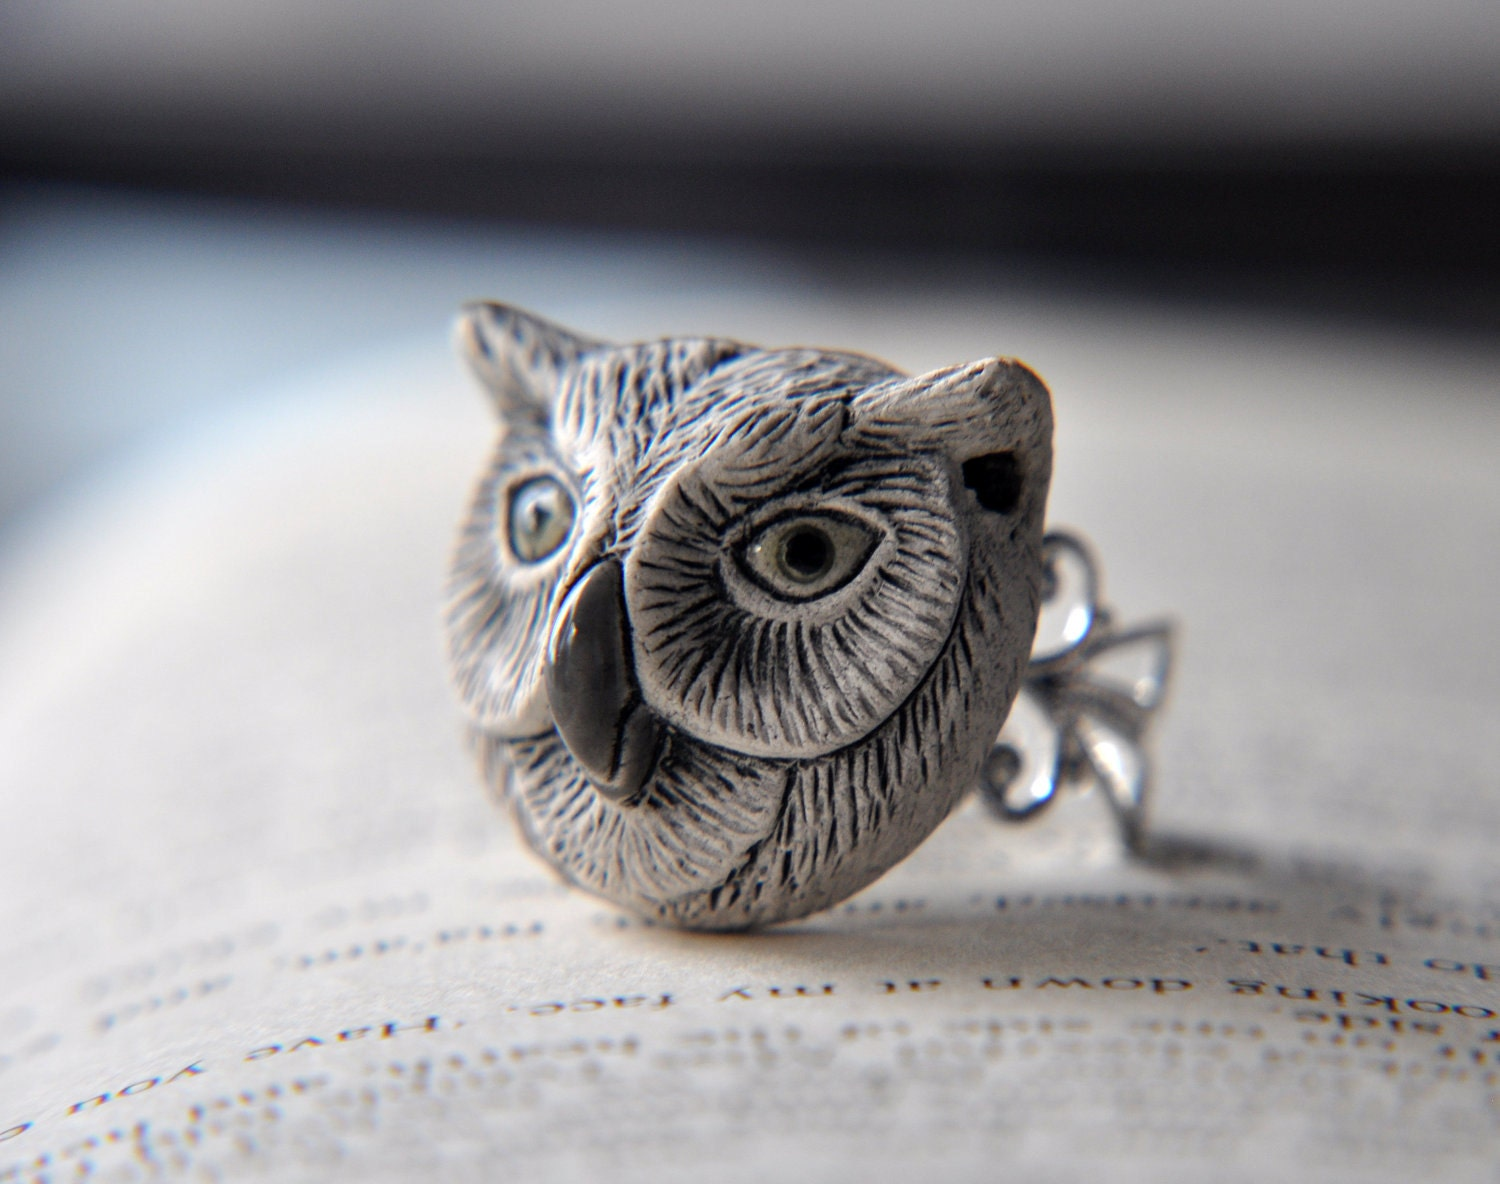 Wise Owl Ring - Adjustable Filigree Ring Band in Gold or Silver  You Pick the Color - Woodland Forest Friends - FawningInLove